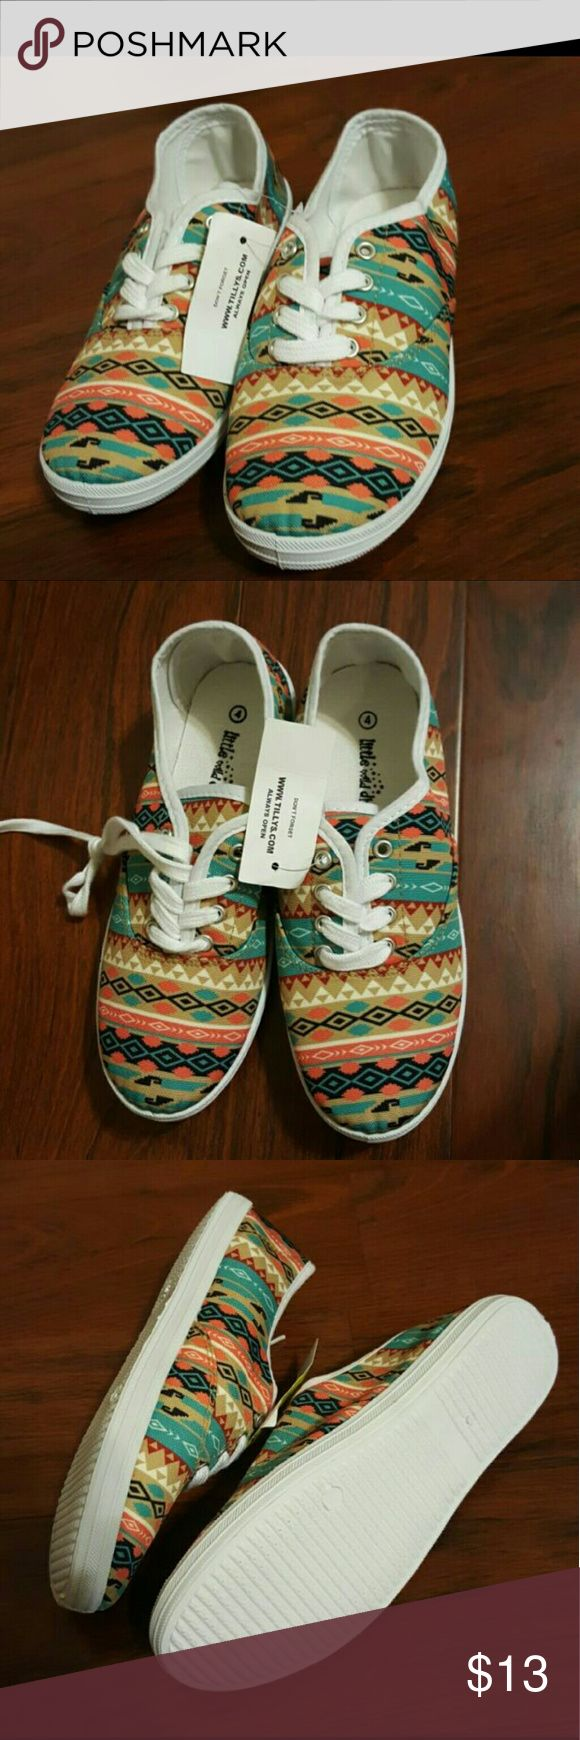 Tillys Aztec Print Shoes BRAND NEW WITH TAGS never worn  Says size 4 but is equivalent to a woman's size 7 (: Tilly's Shoes Sneakers